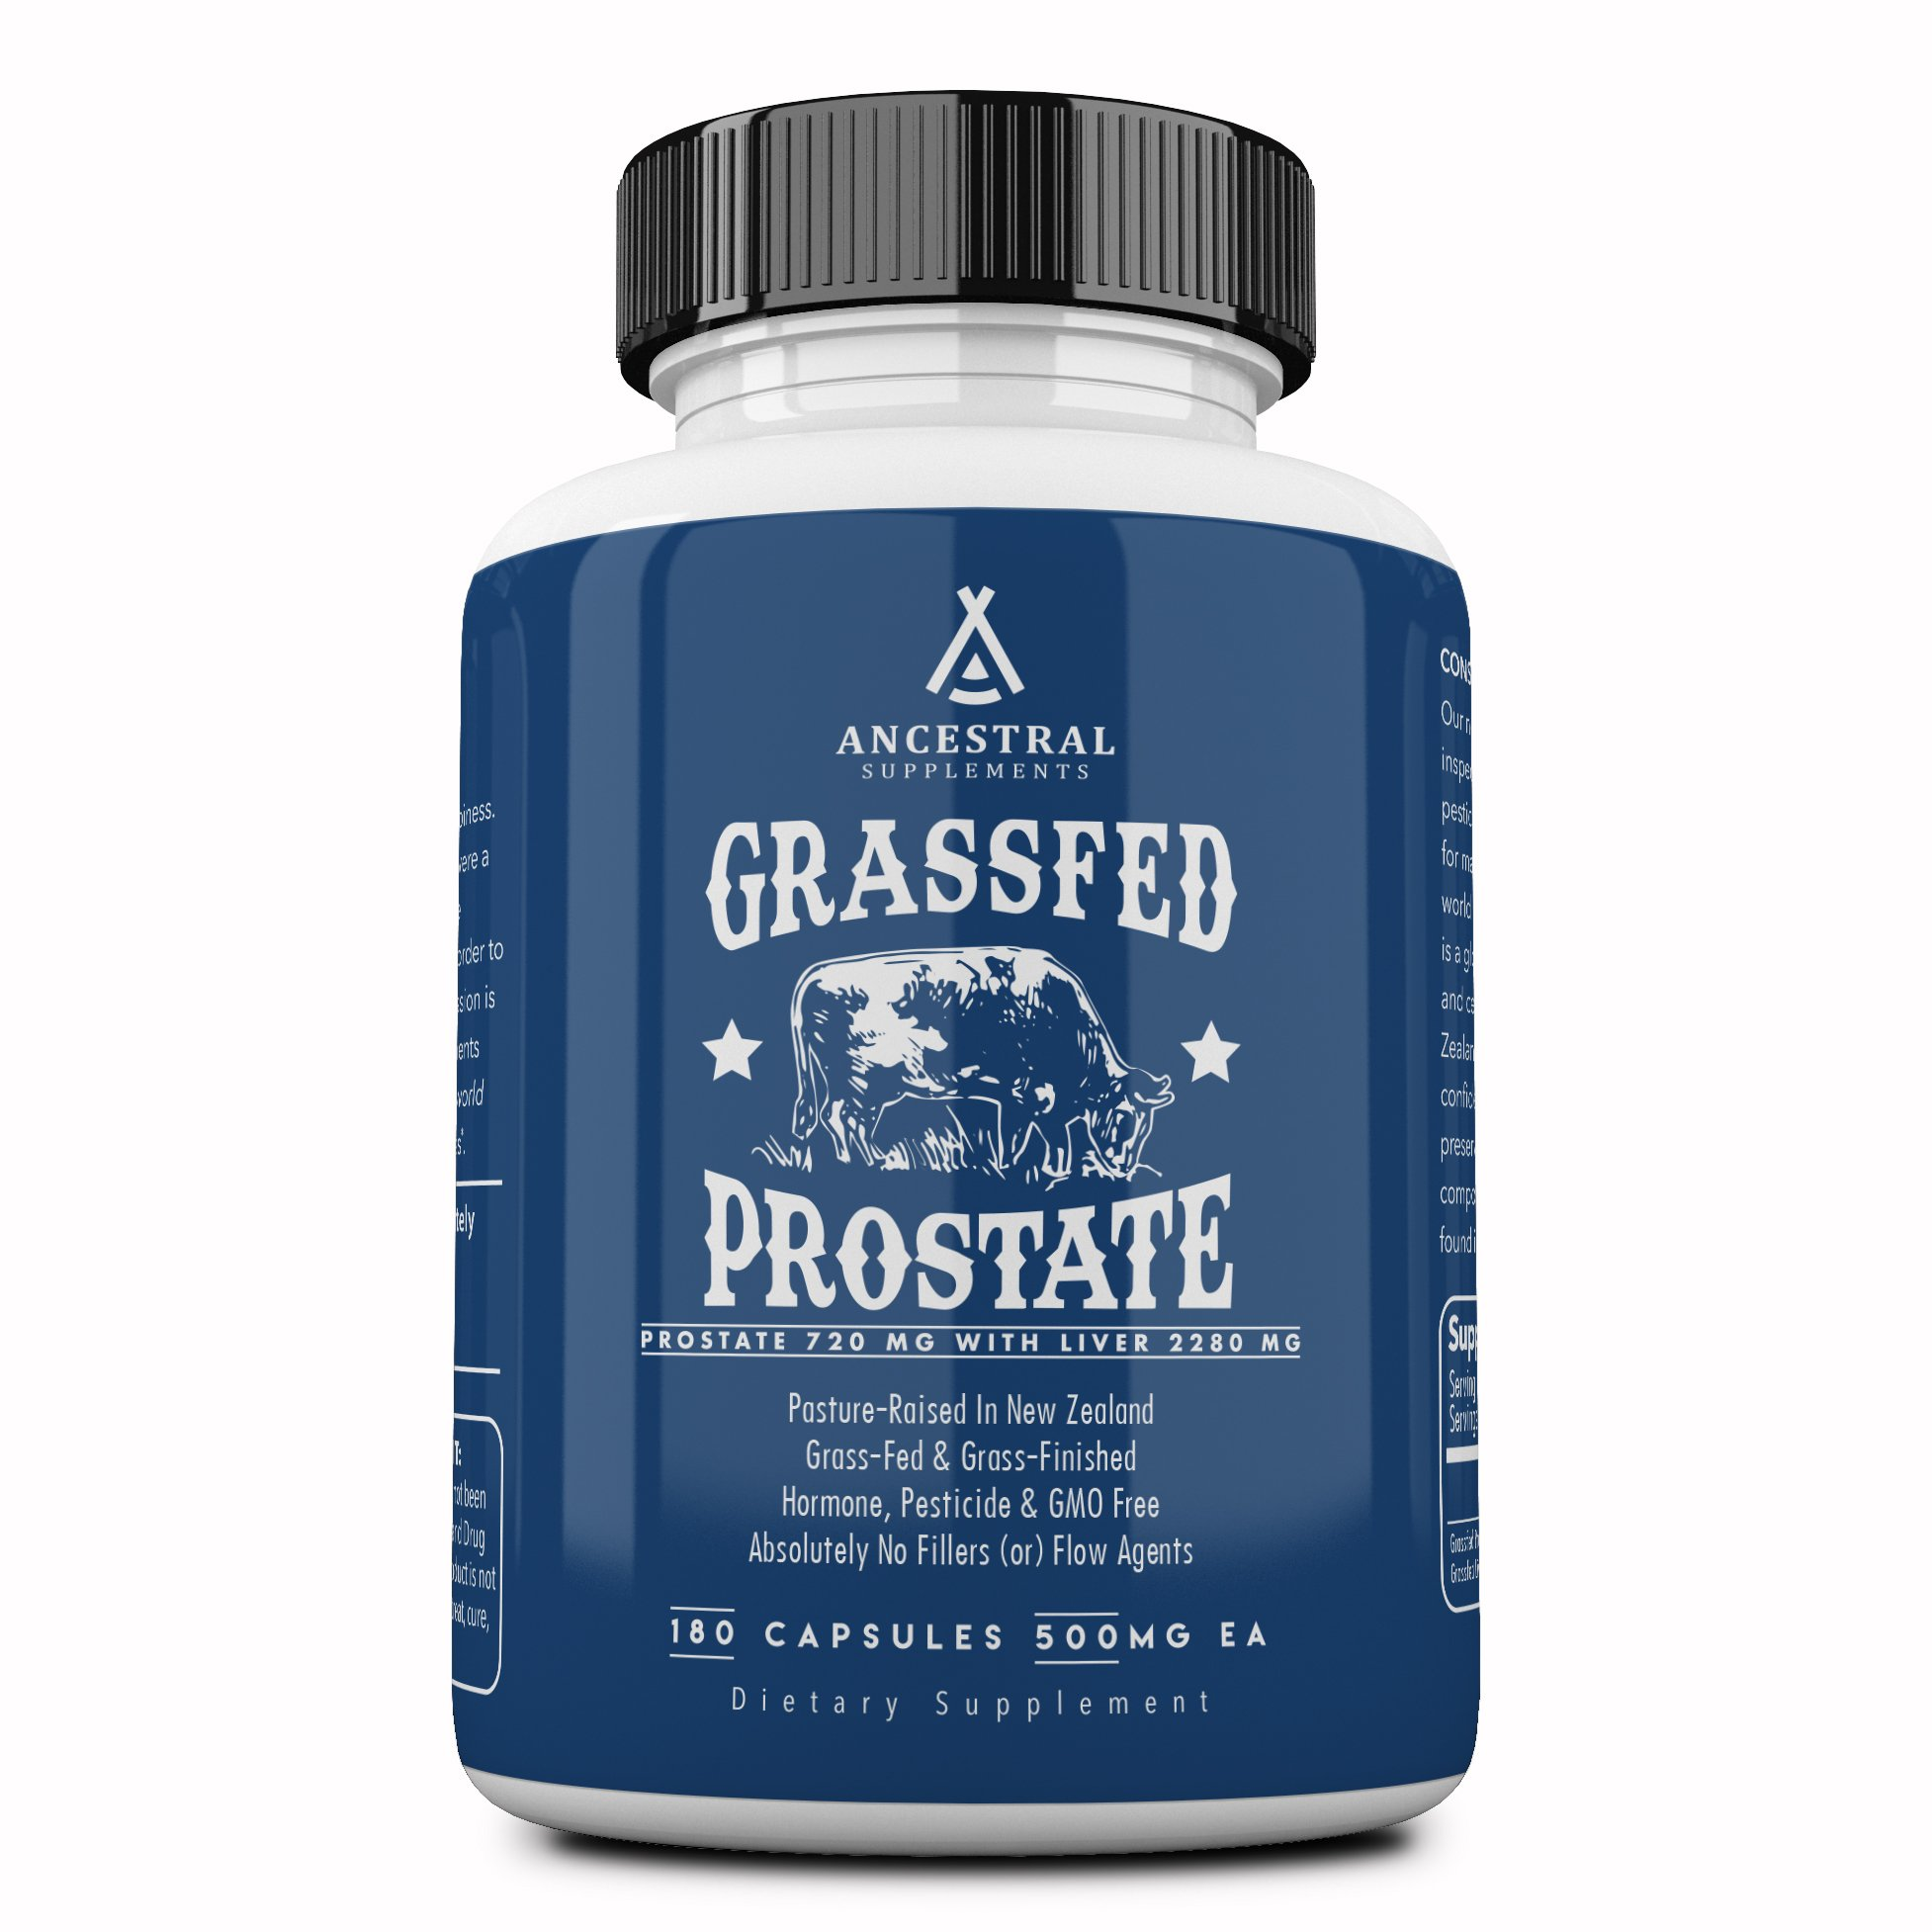 Ancestral Supplements Prostate (with Desiccated Liver) - Supports Prostate Health (180 Capsules) by Ancestral Supplements